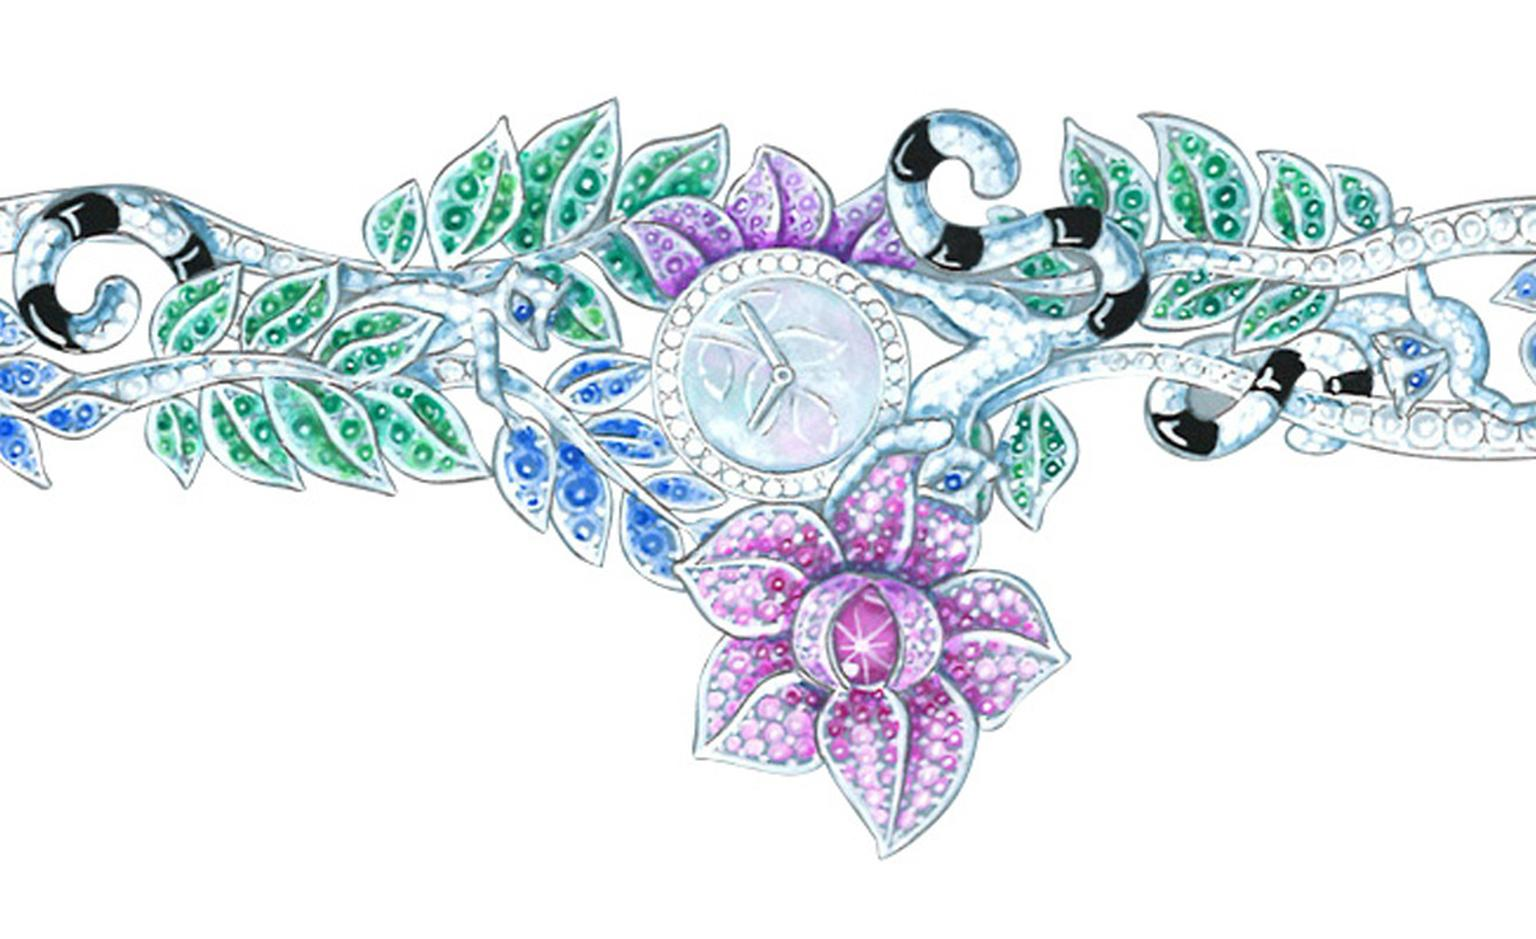 Van Cleef & Arpels Les Voyages Extraordinaires gouache of jewellery watch featuring exotic flora and fauna.